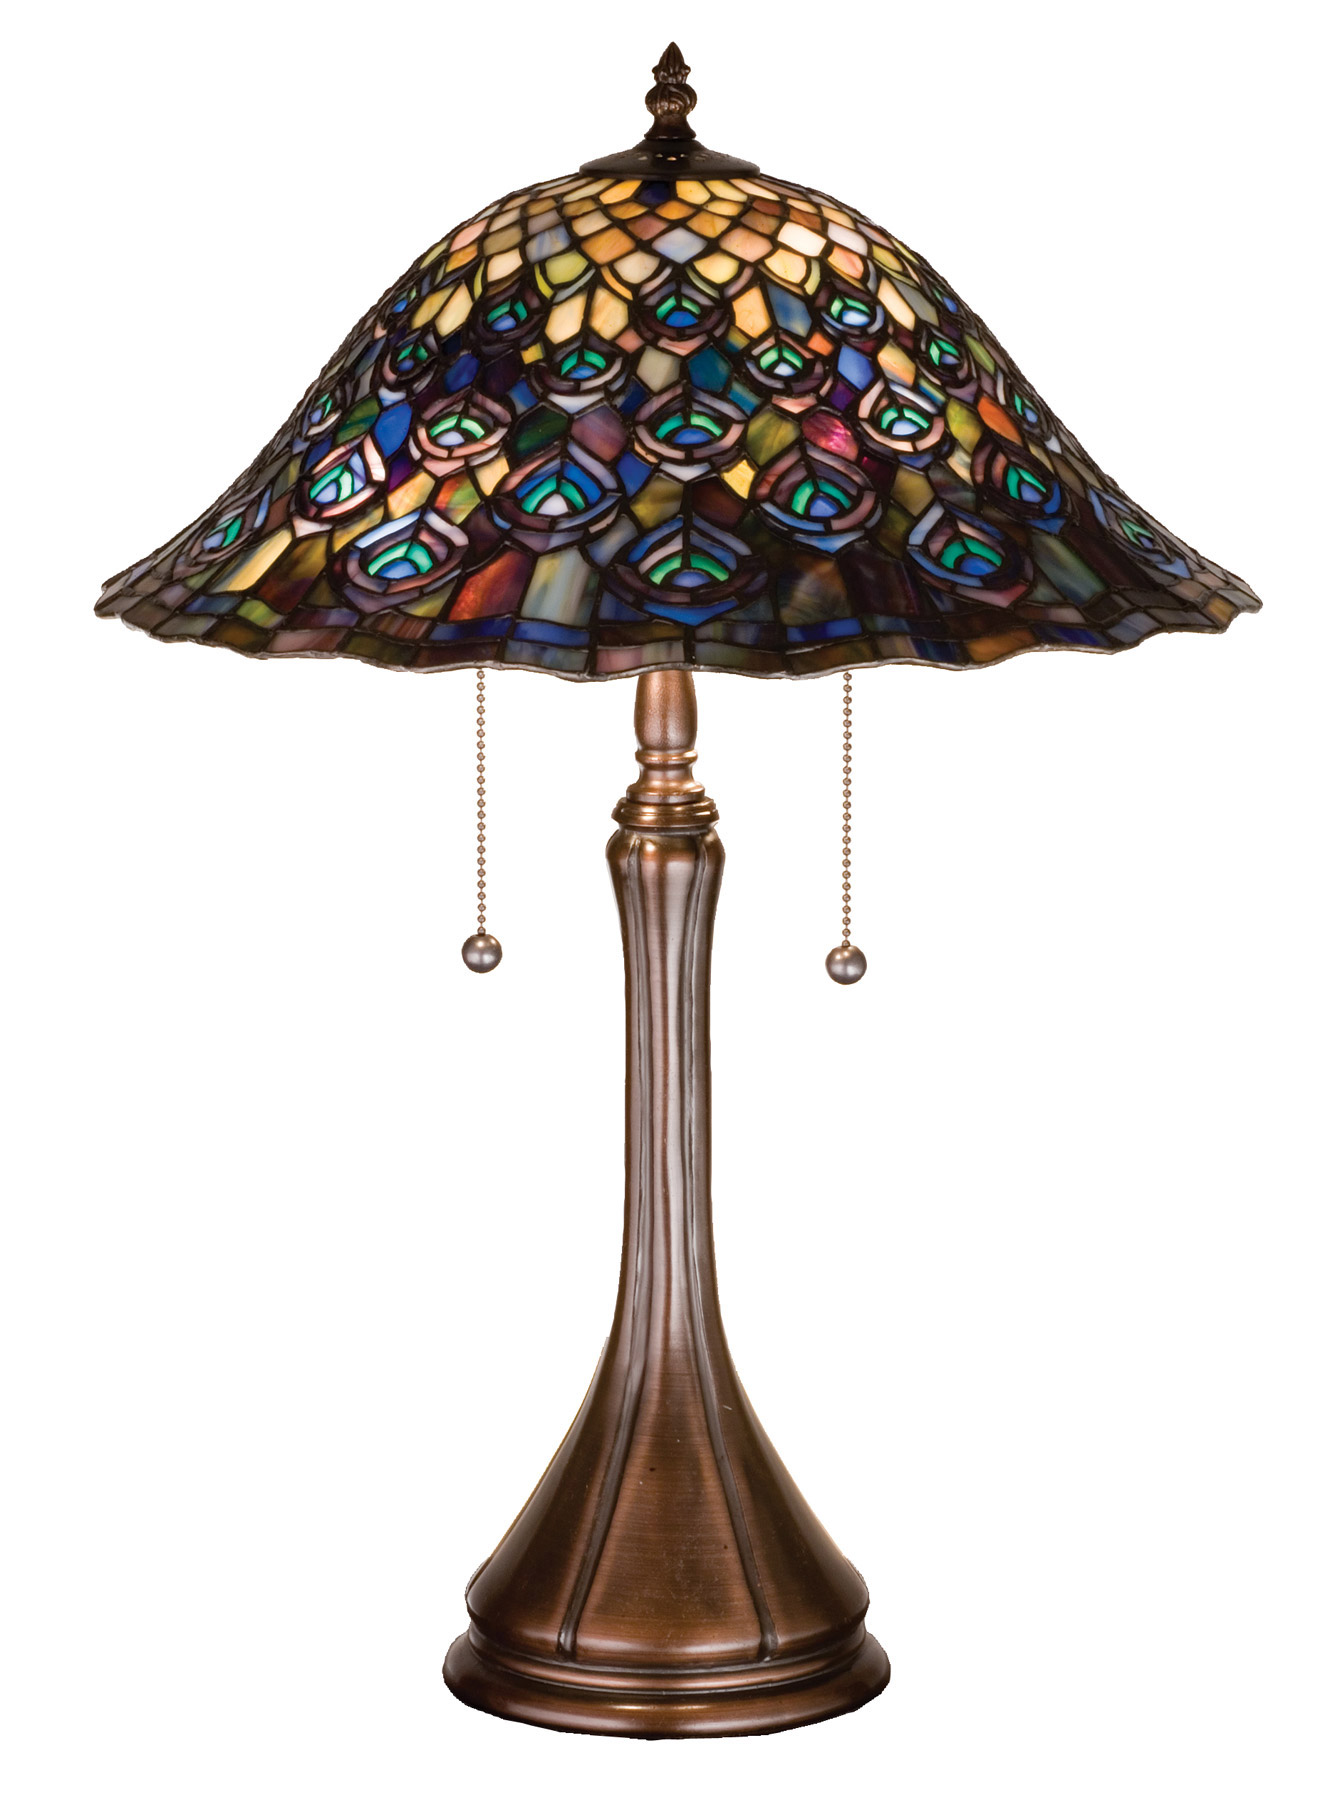 home lamps table lamps standard table lamps meyda 14574. Black Bedroom Furniture Sets. Home Design Ideas